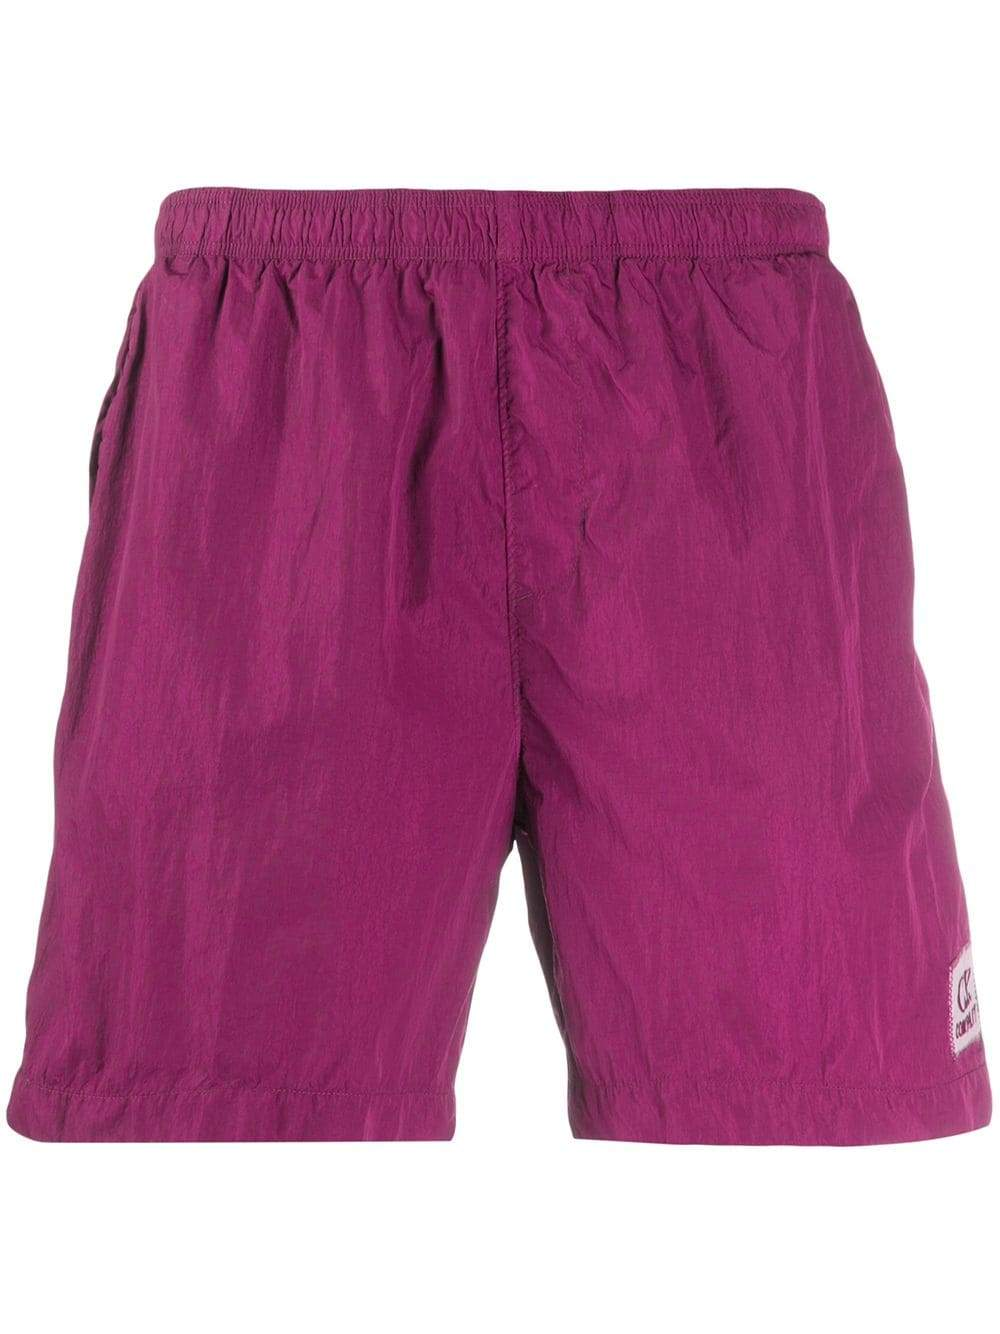 C.P. COMPANY logo embroidered swimming trunks purple